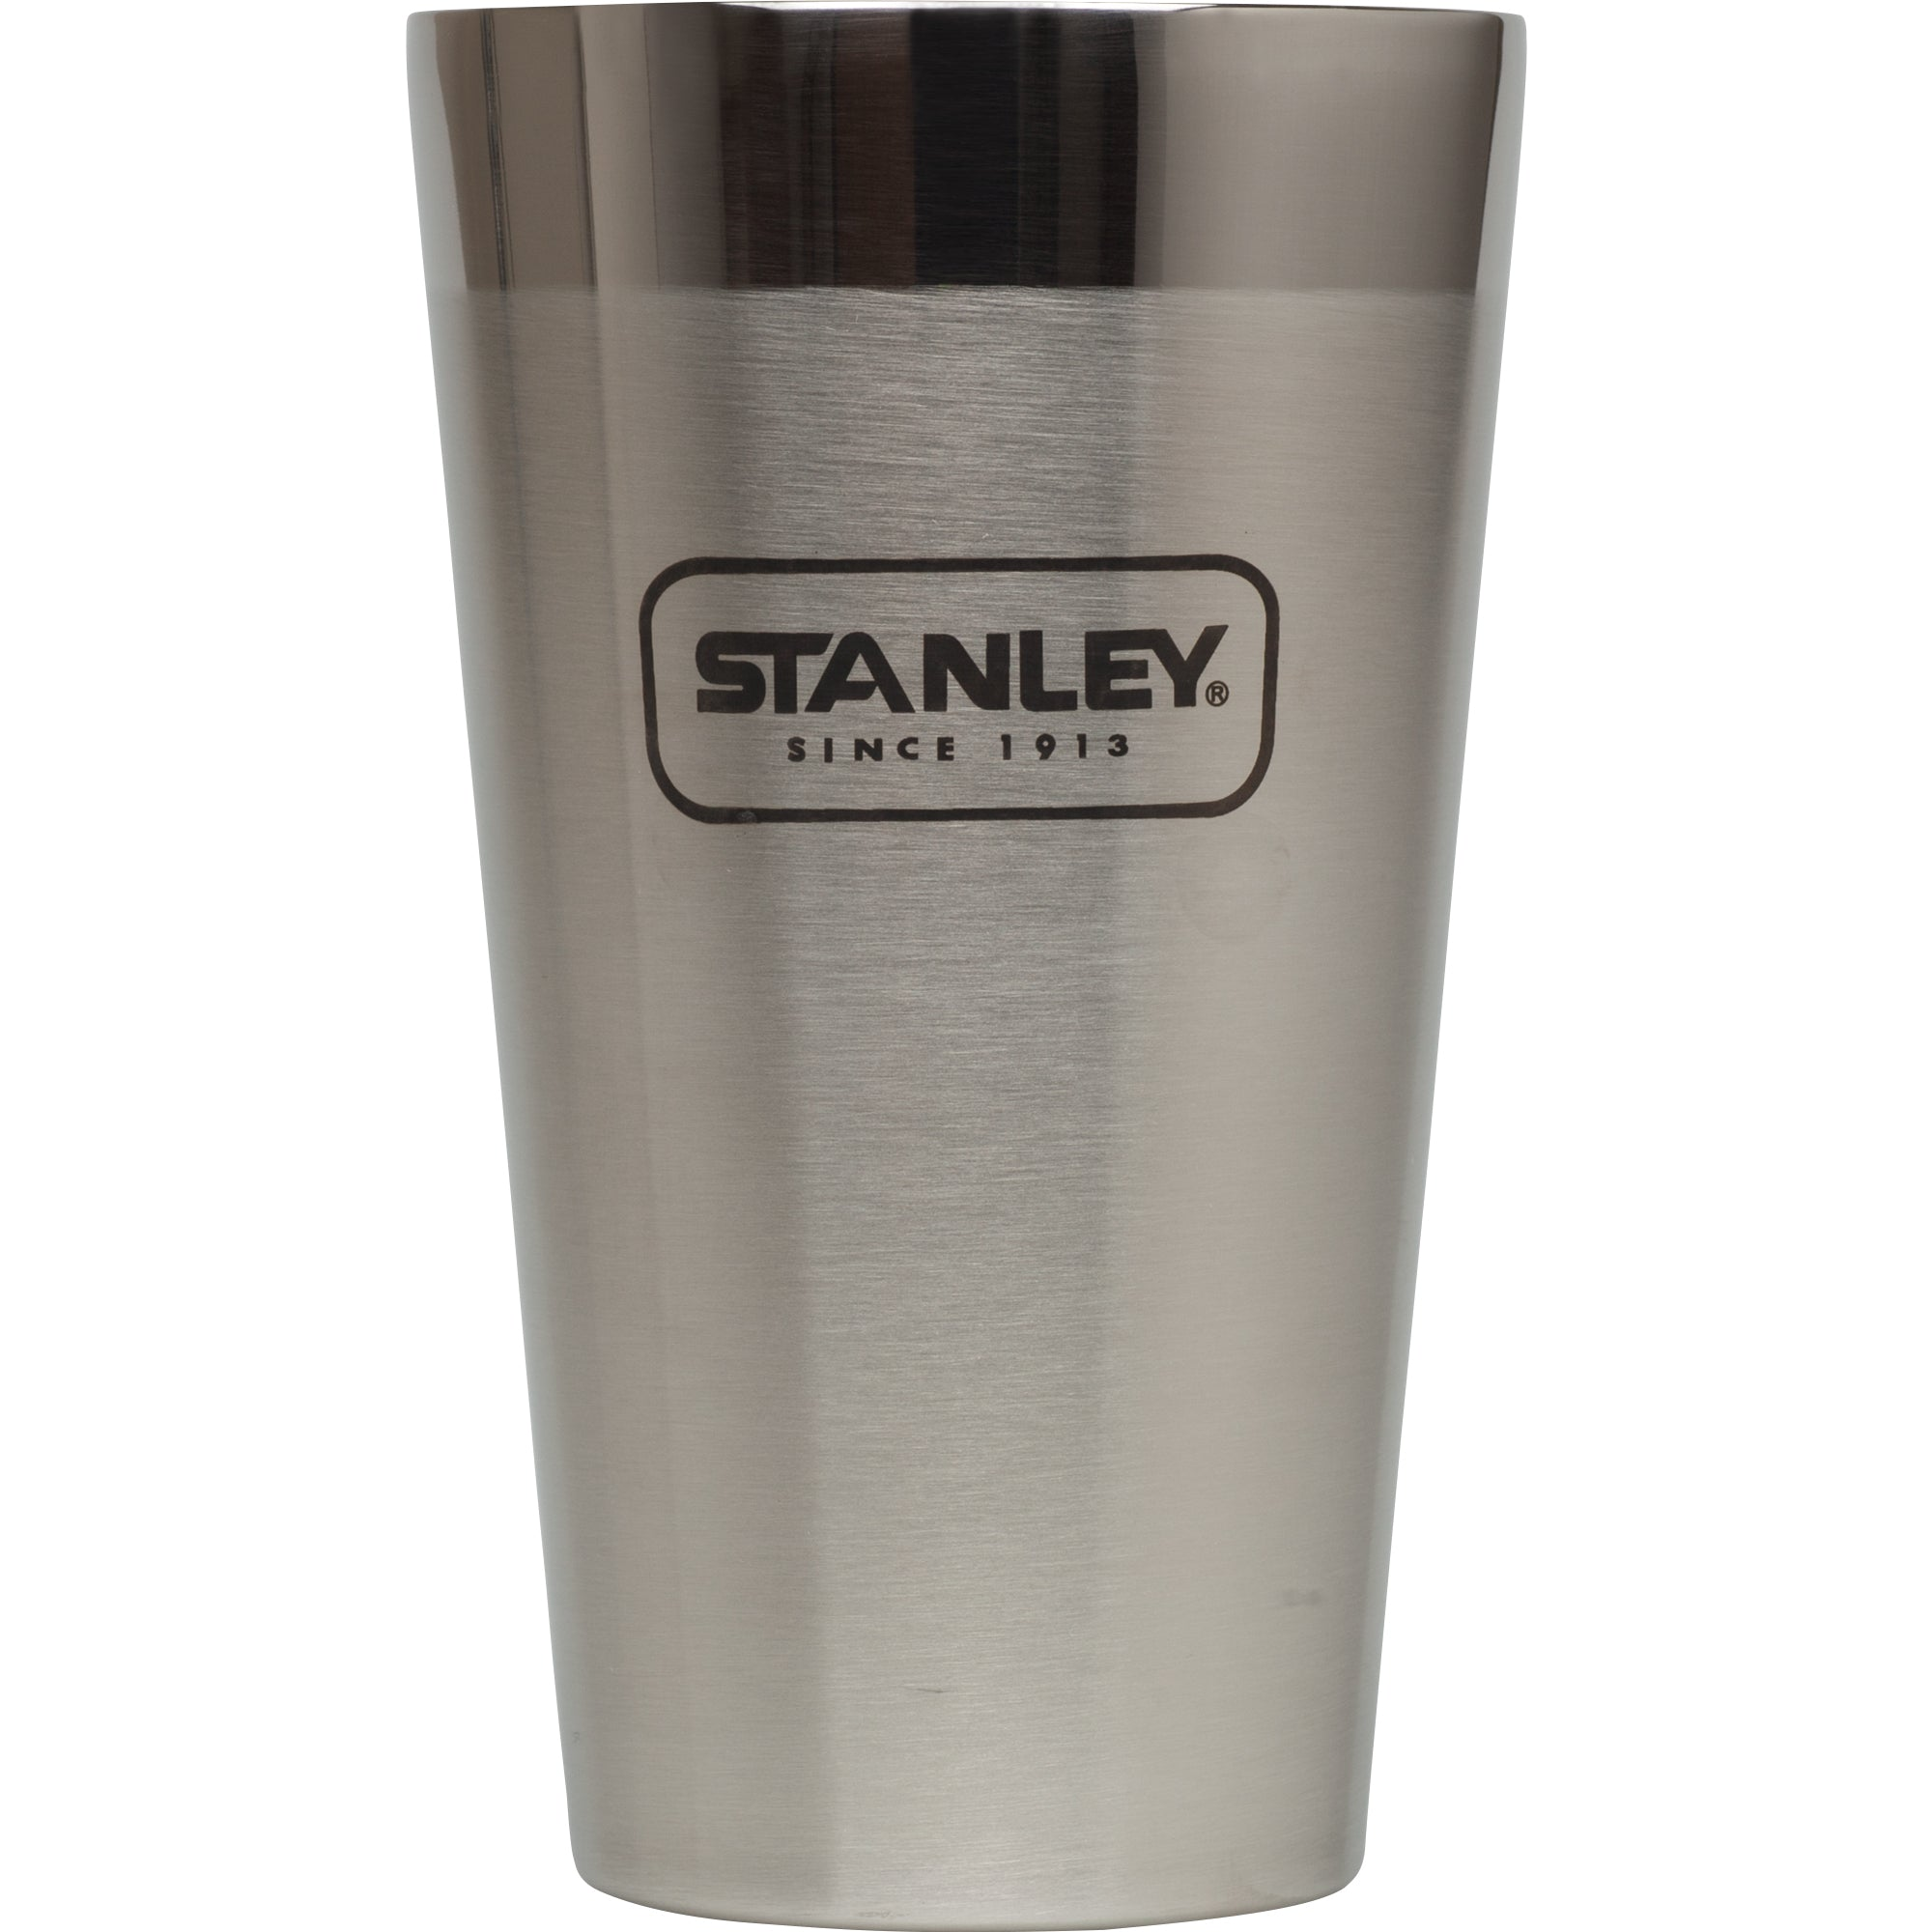 Stanley-Adventure Stacking Beer Pint 473ml-Mugs-Stainless Steel-Gearaholic.com.sg